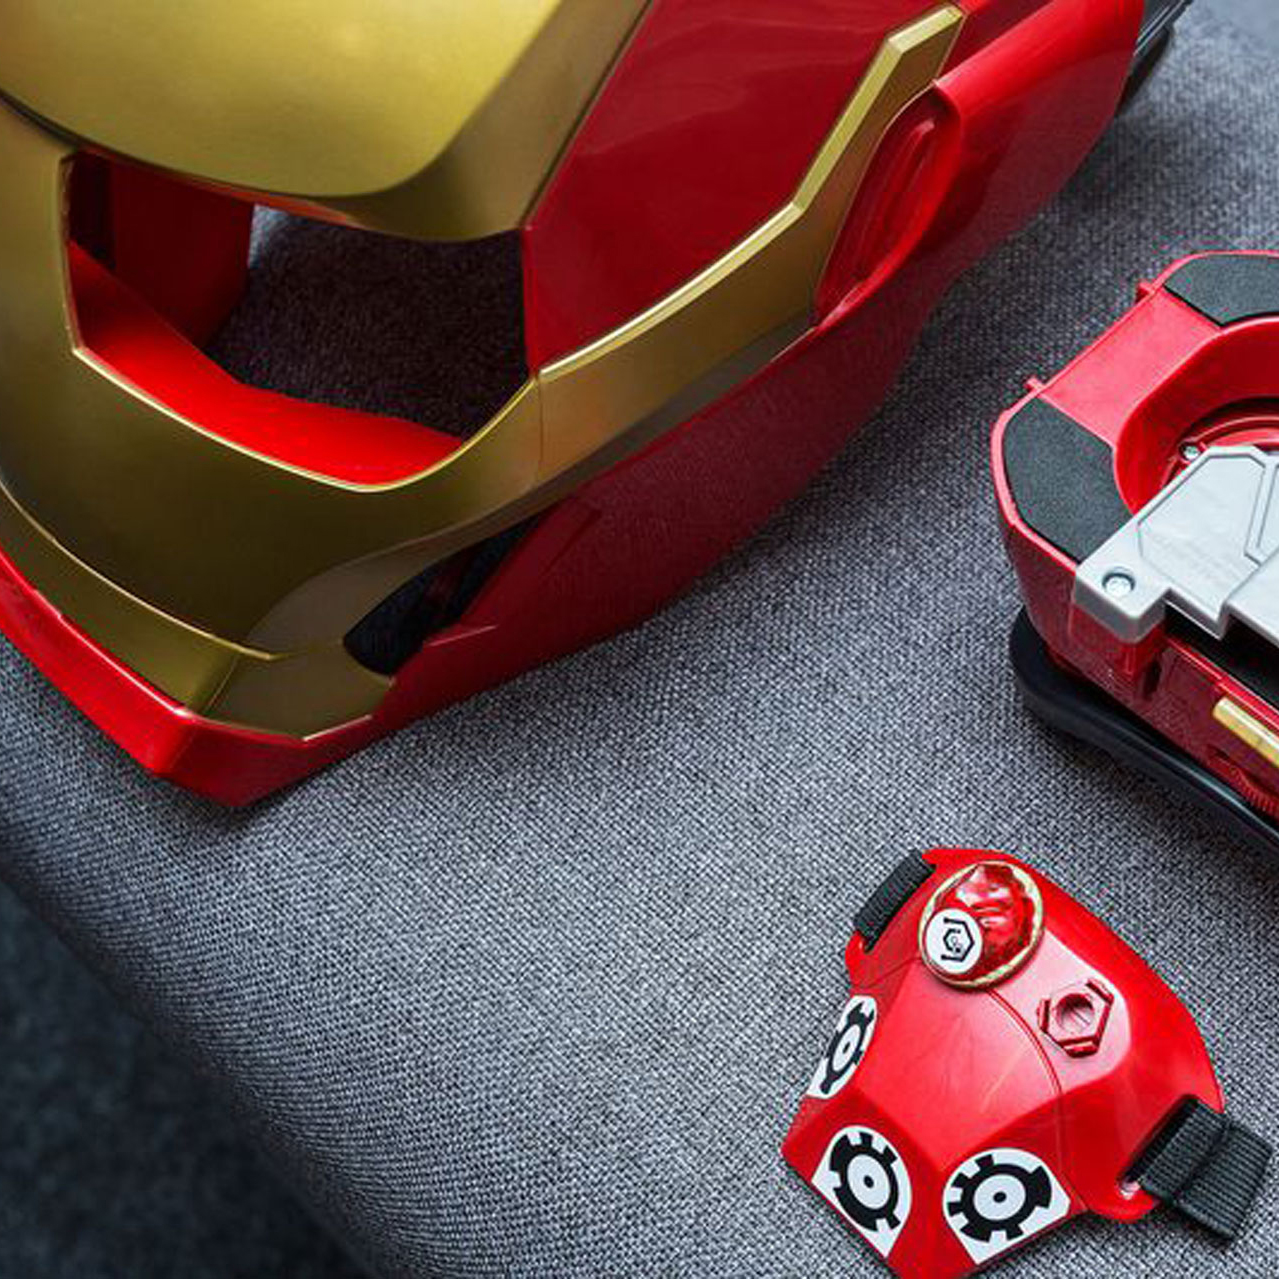 iron-man-ar-headset-hasbro.jpg